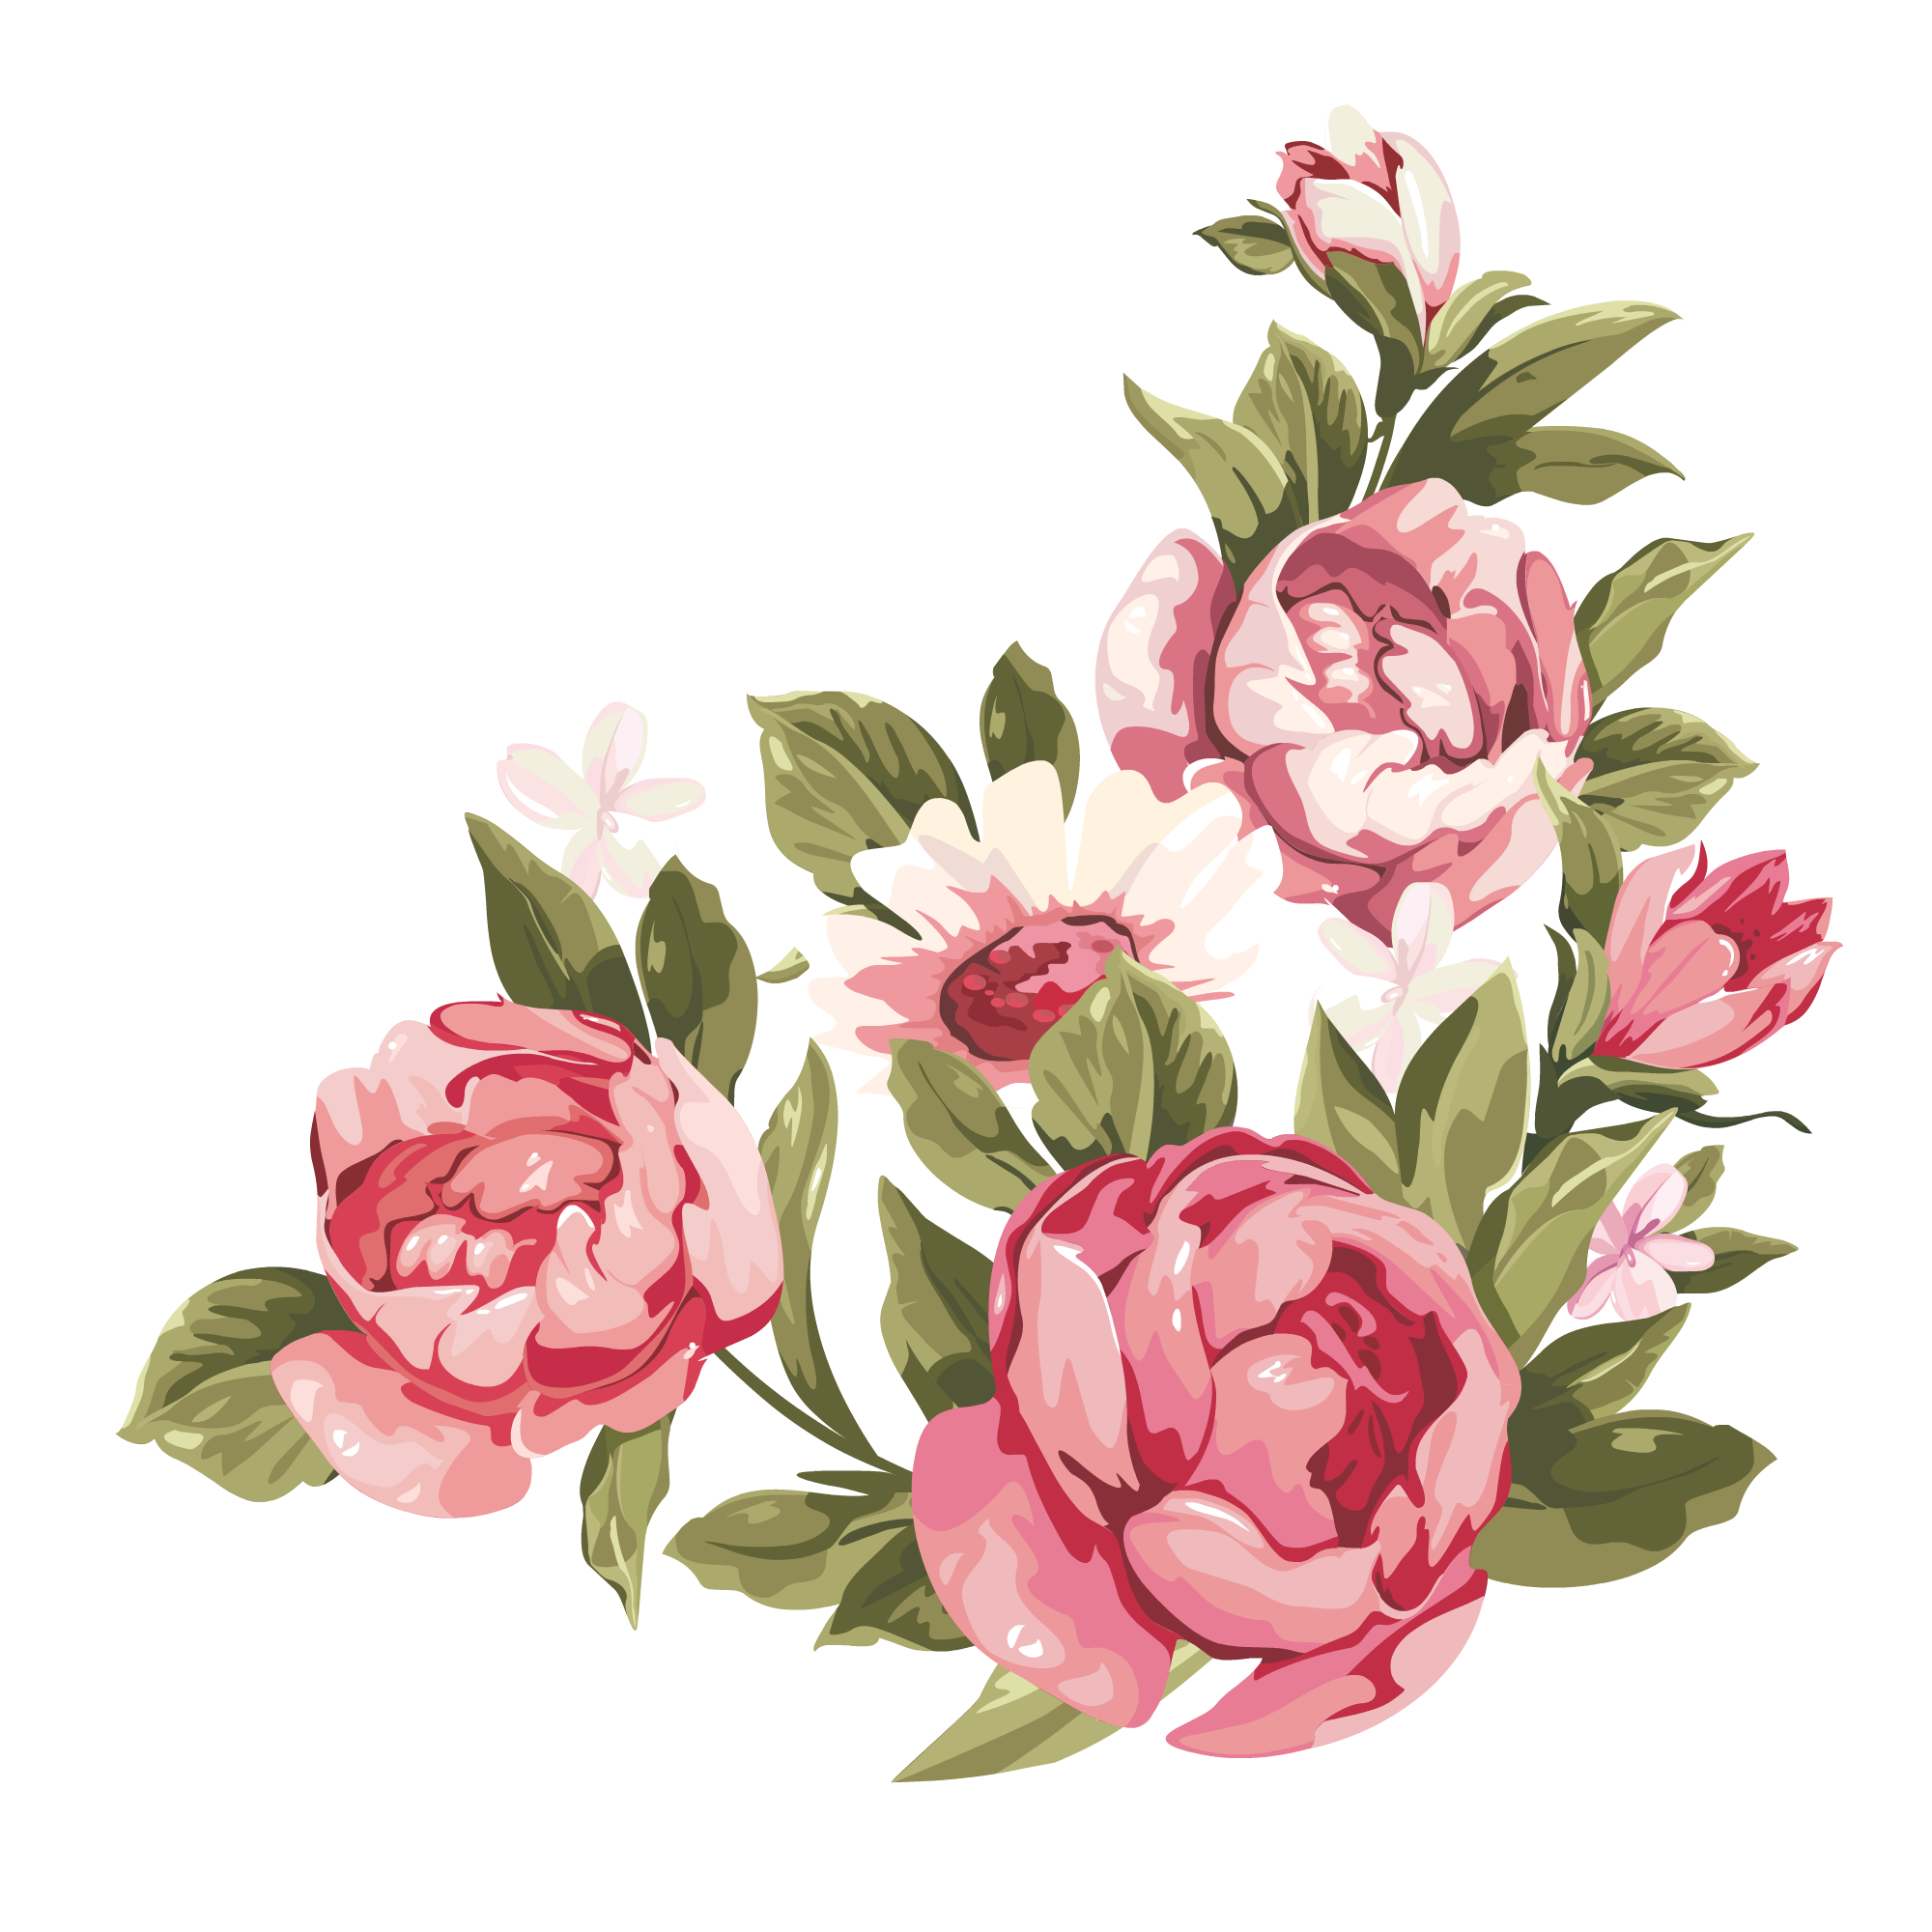 vector free How to distress furniture. Peonies clipart floral accent